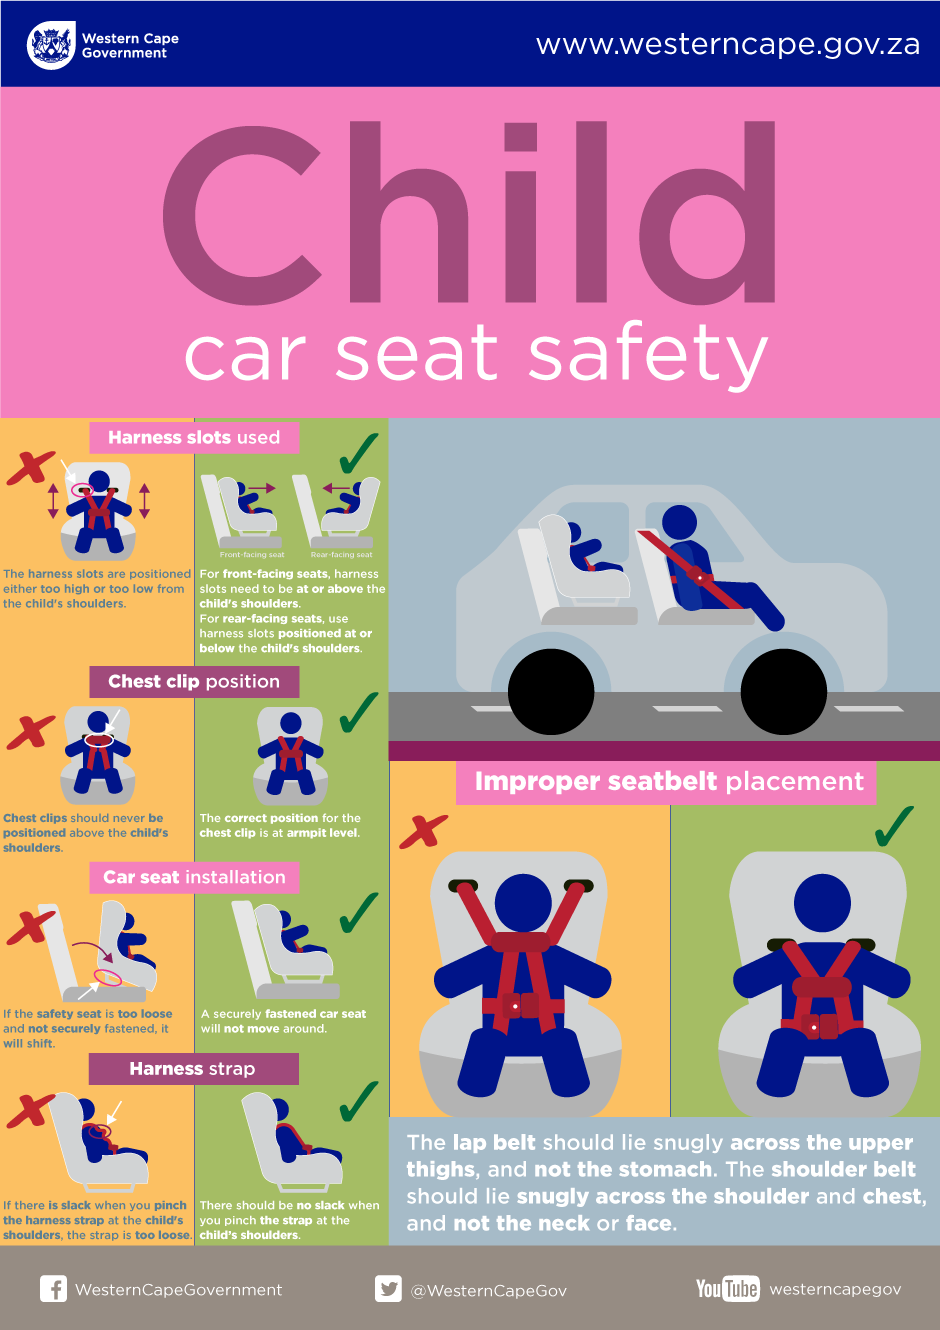 Child car seat safety infographic